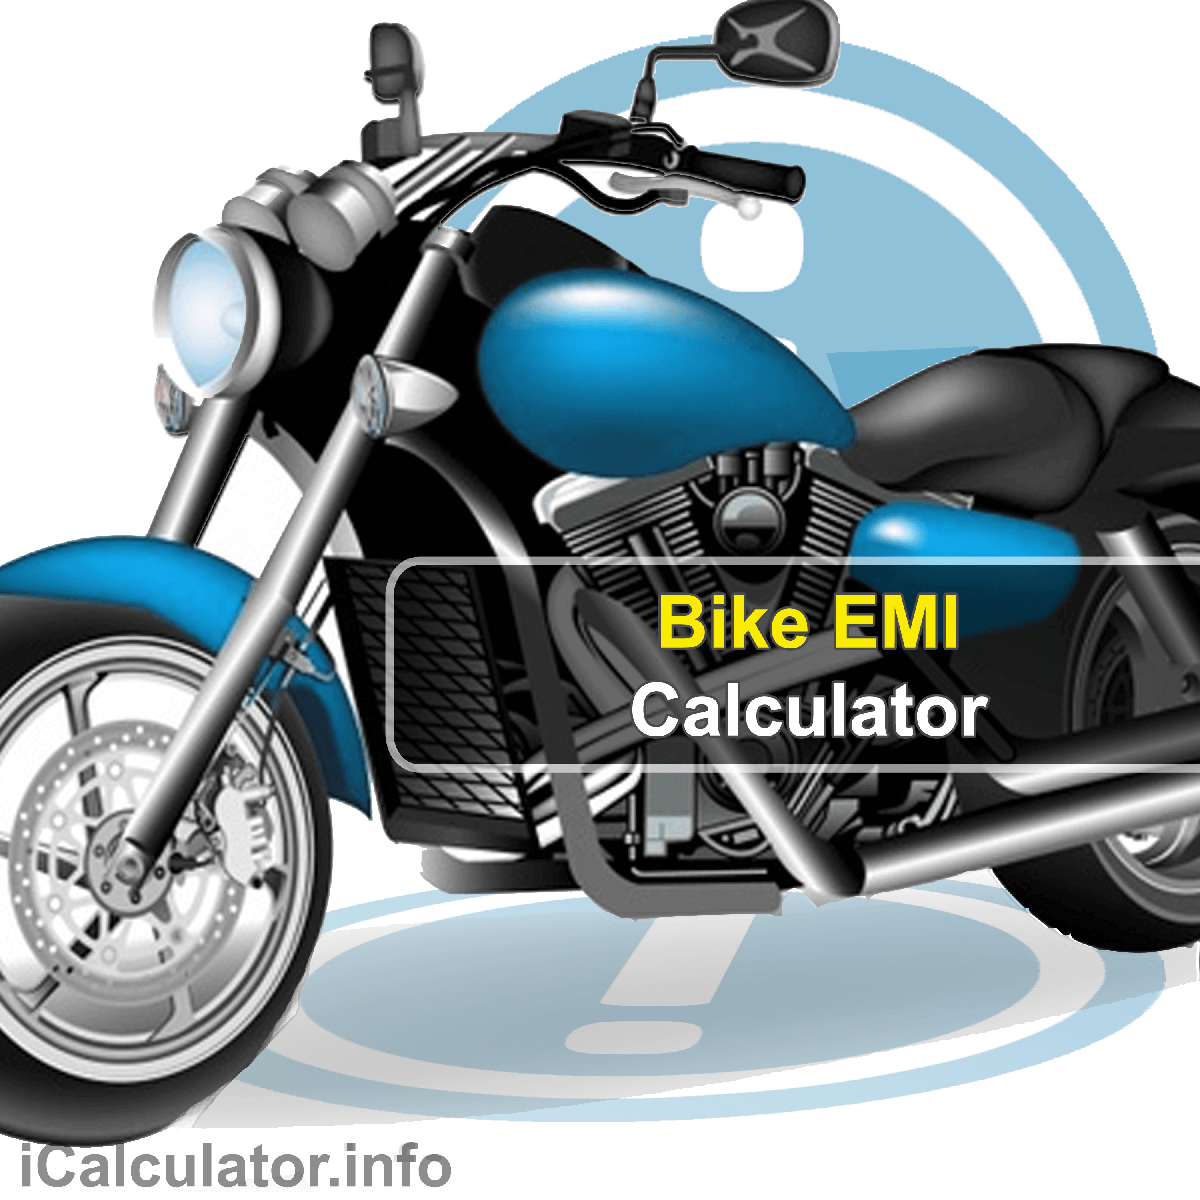 Bike EMI Calculator. This image provides details of how to calculate Bike EMI using a calculator and notepad. By using the EMI formula, the Bike EMI Calculator provides a true calculation of the monthly repayments on a bike loan for your new motorbike.